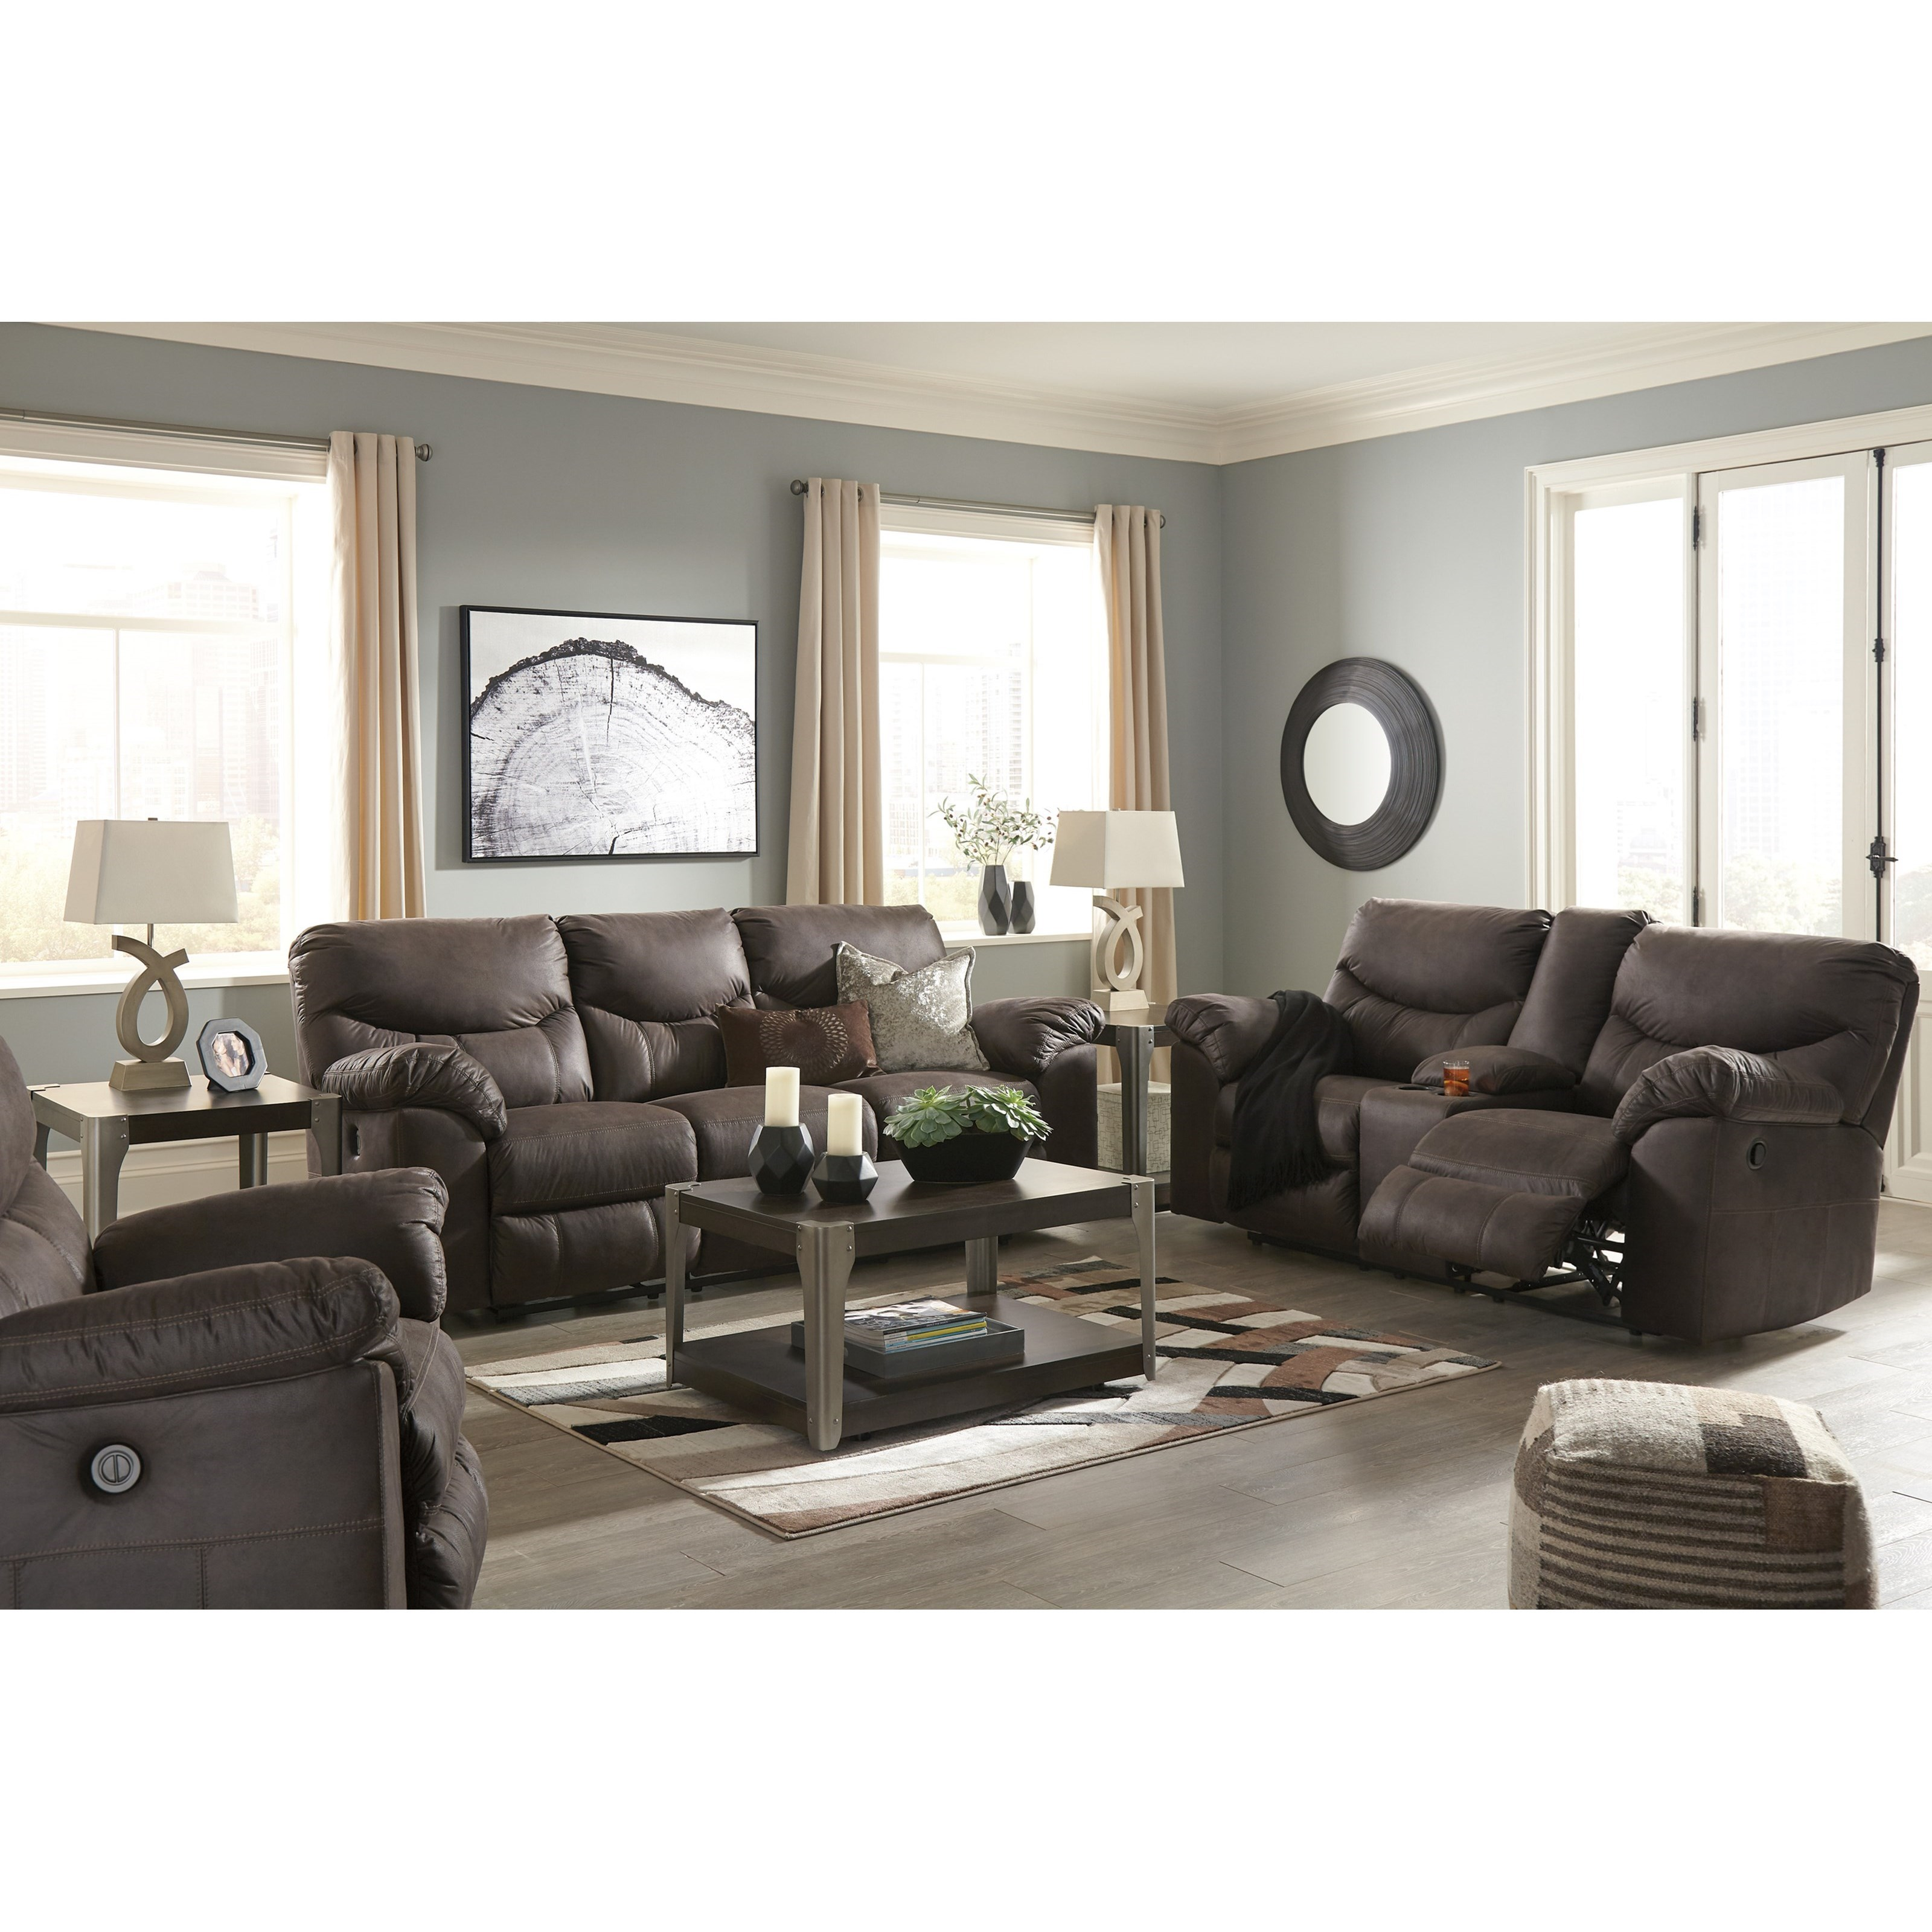 Boxberg Reclining Living Room Group by Signature Design by Ashley at Sparks HomeStore